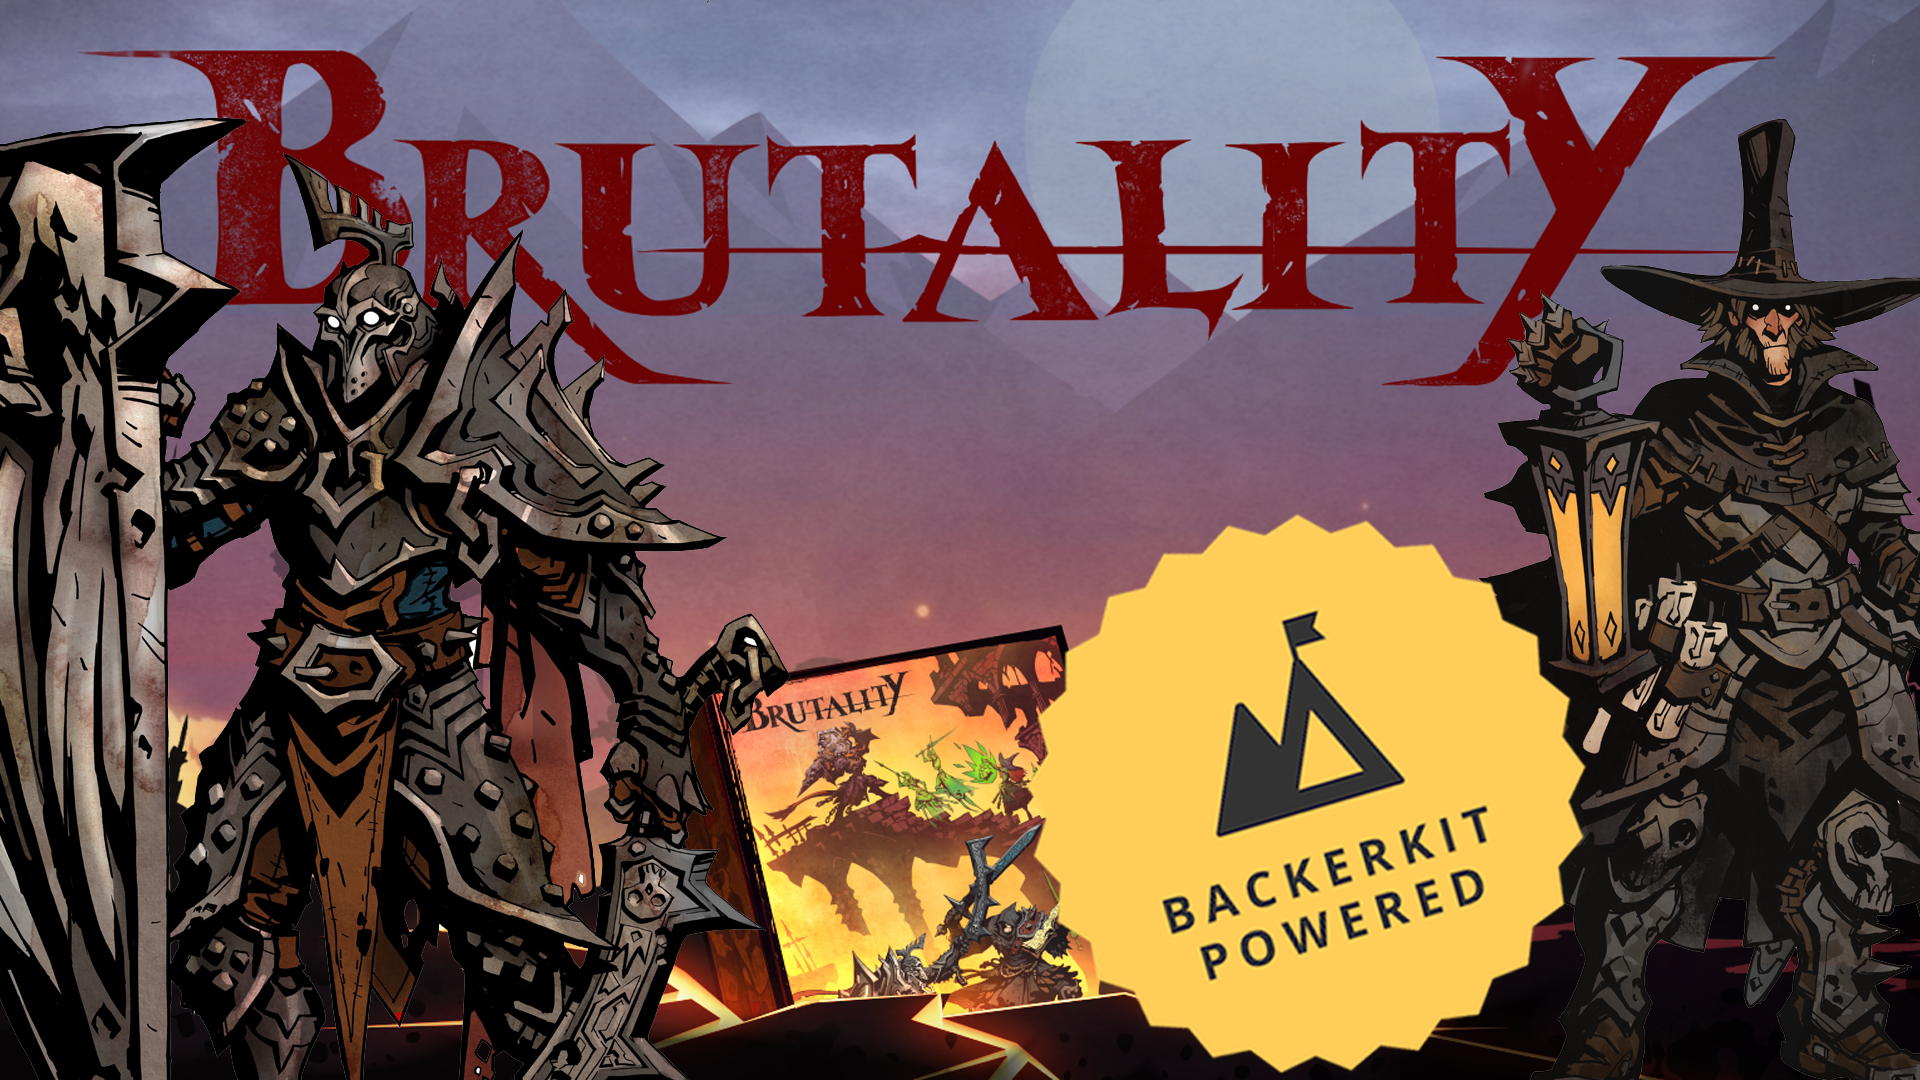 brutalitybackerkit.png